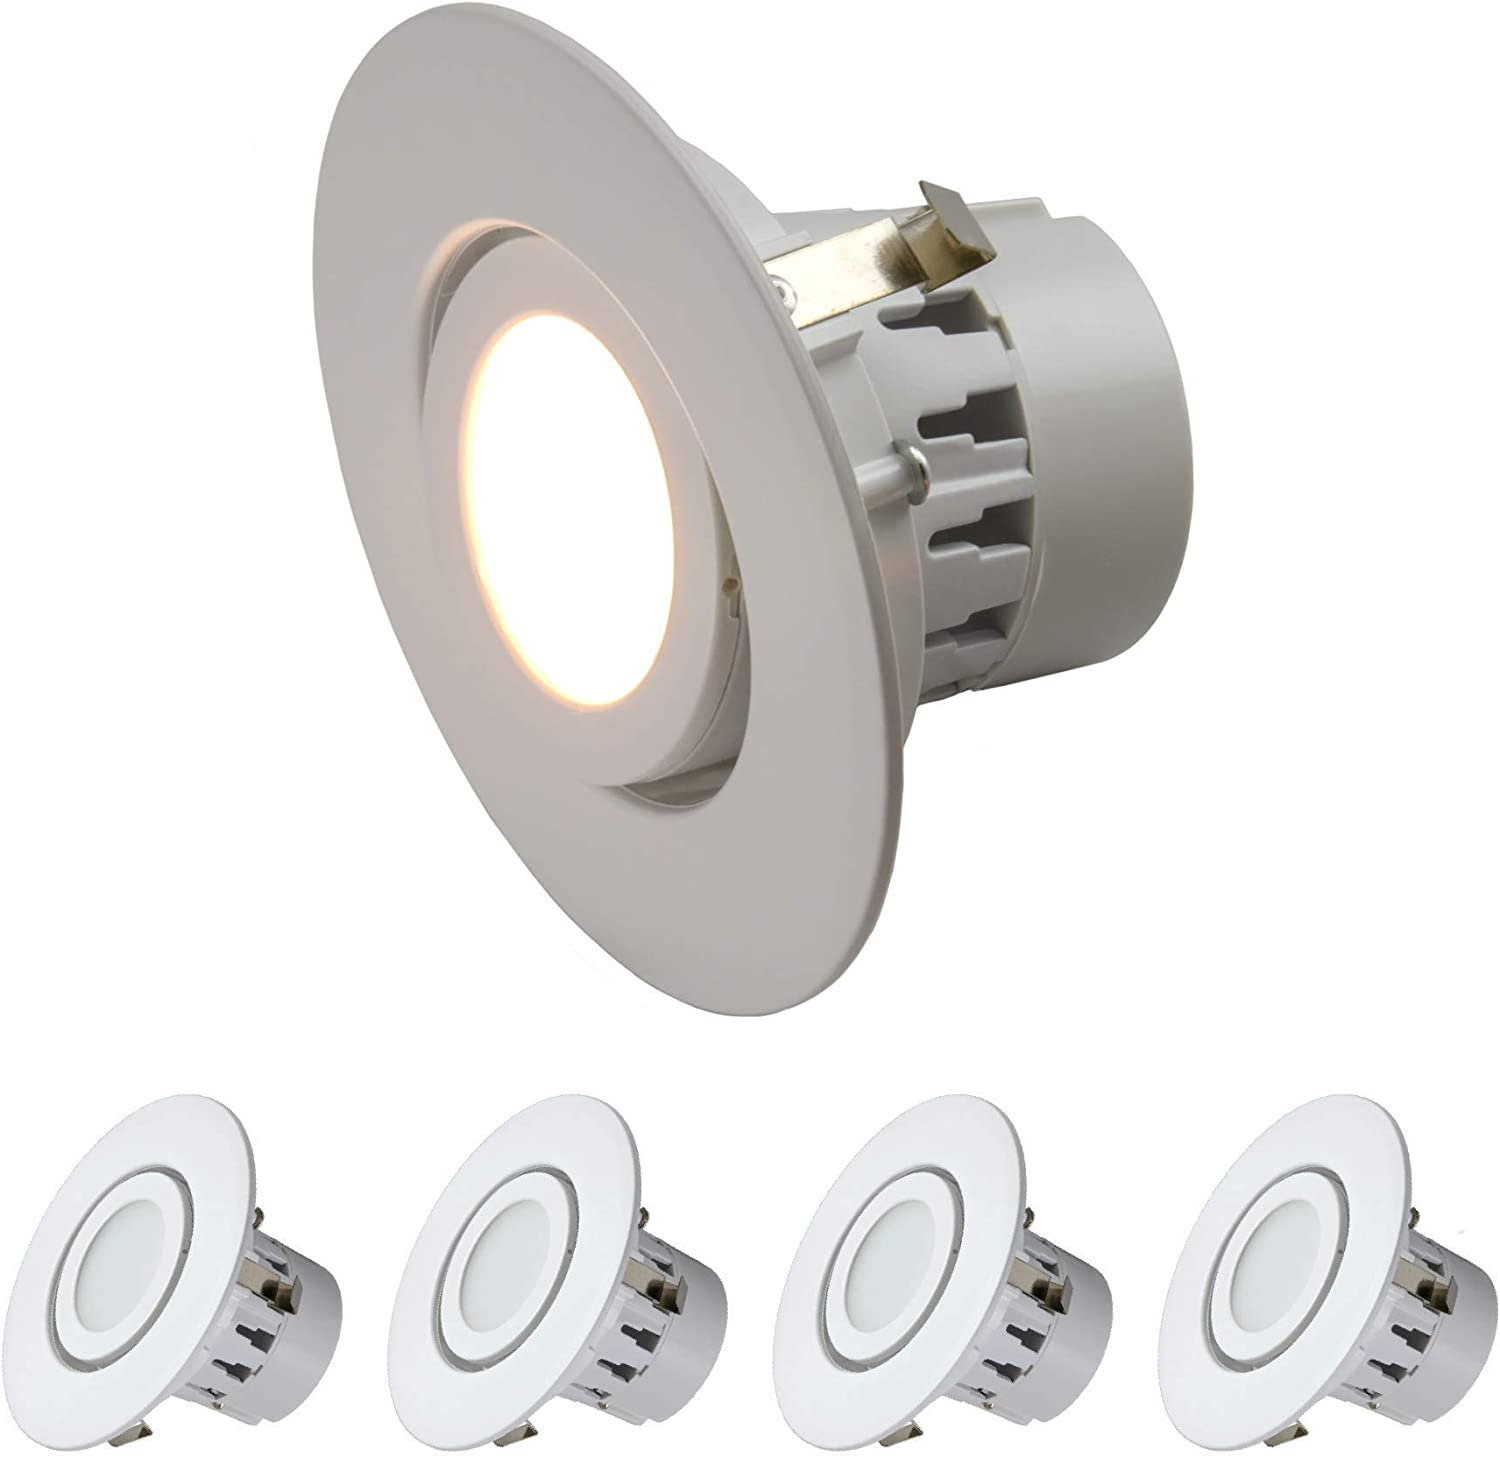 75w Equivalent Wet Loaction Rated; 25,000 Life Hours; Dimmable; Soft White Glow 3000K; 10 Year Warranty 4 Inch LED Gimbal Adjustable Rotating Downlight 6 Pack Renewed 10W=